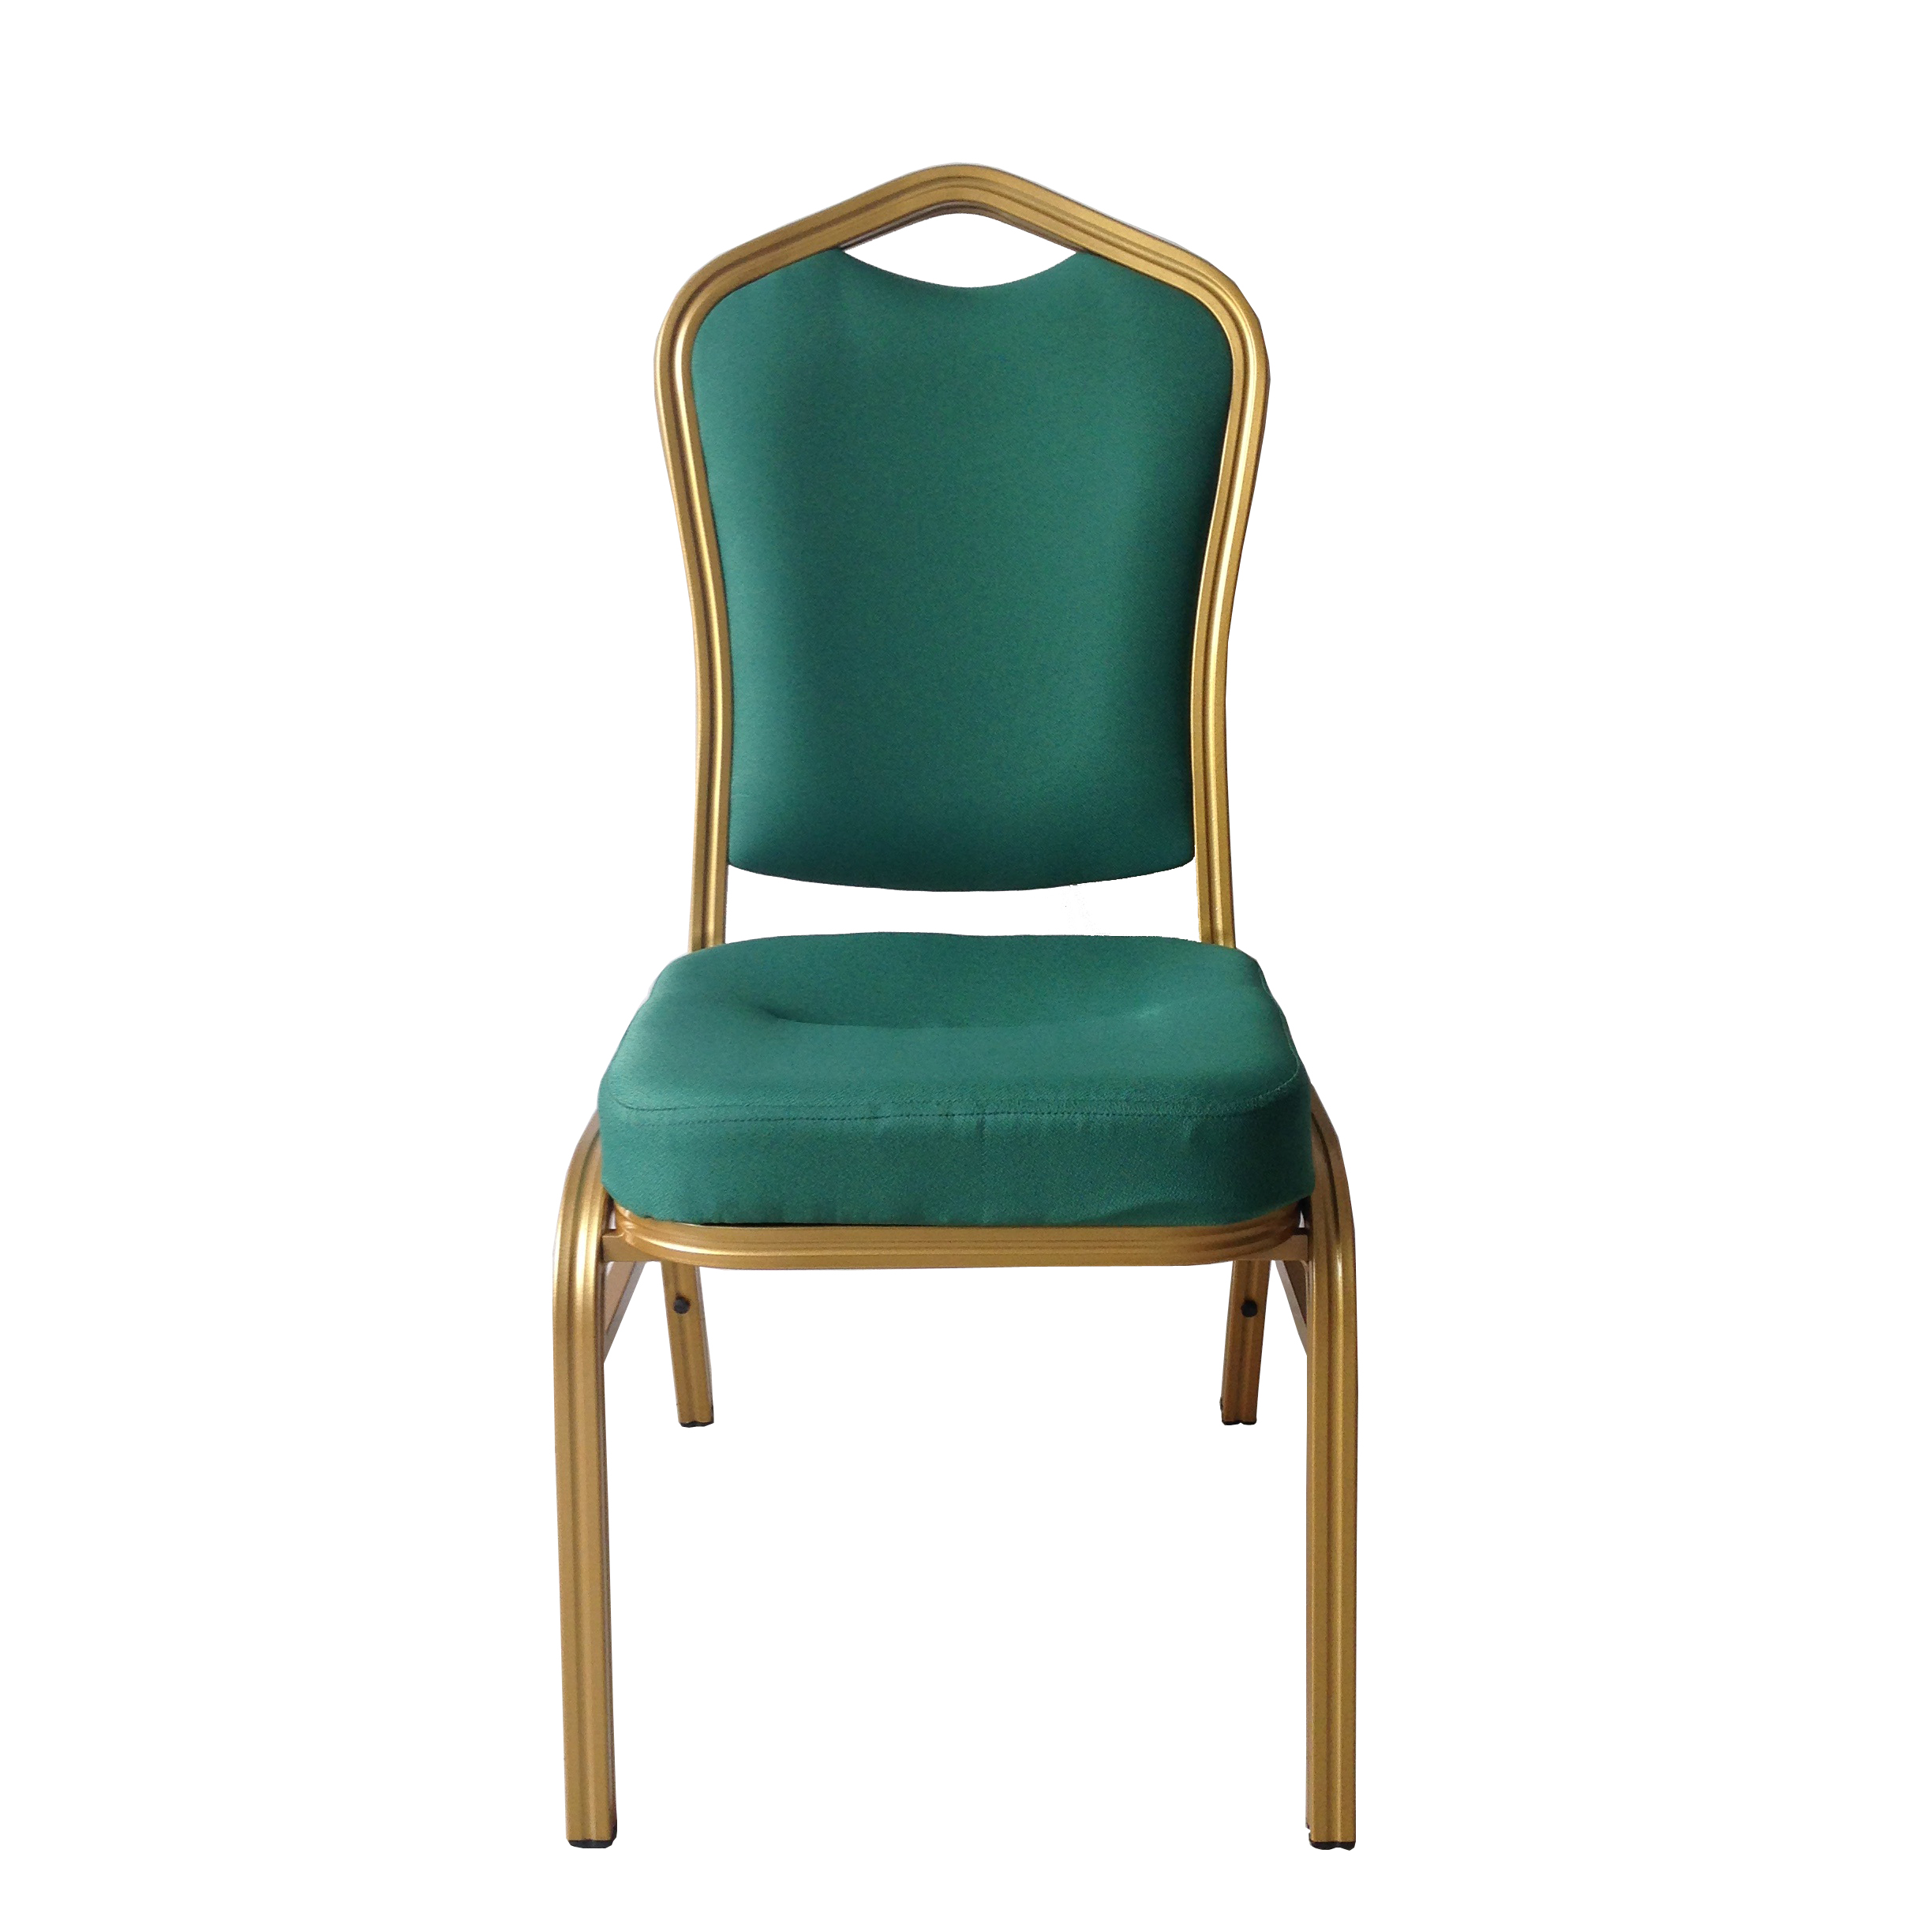 Super Purchasing for Wood Chiavari Chairs -